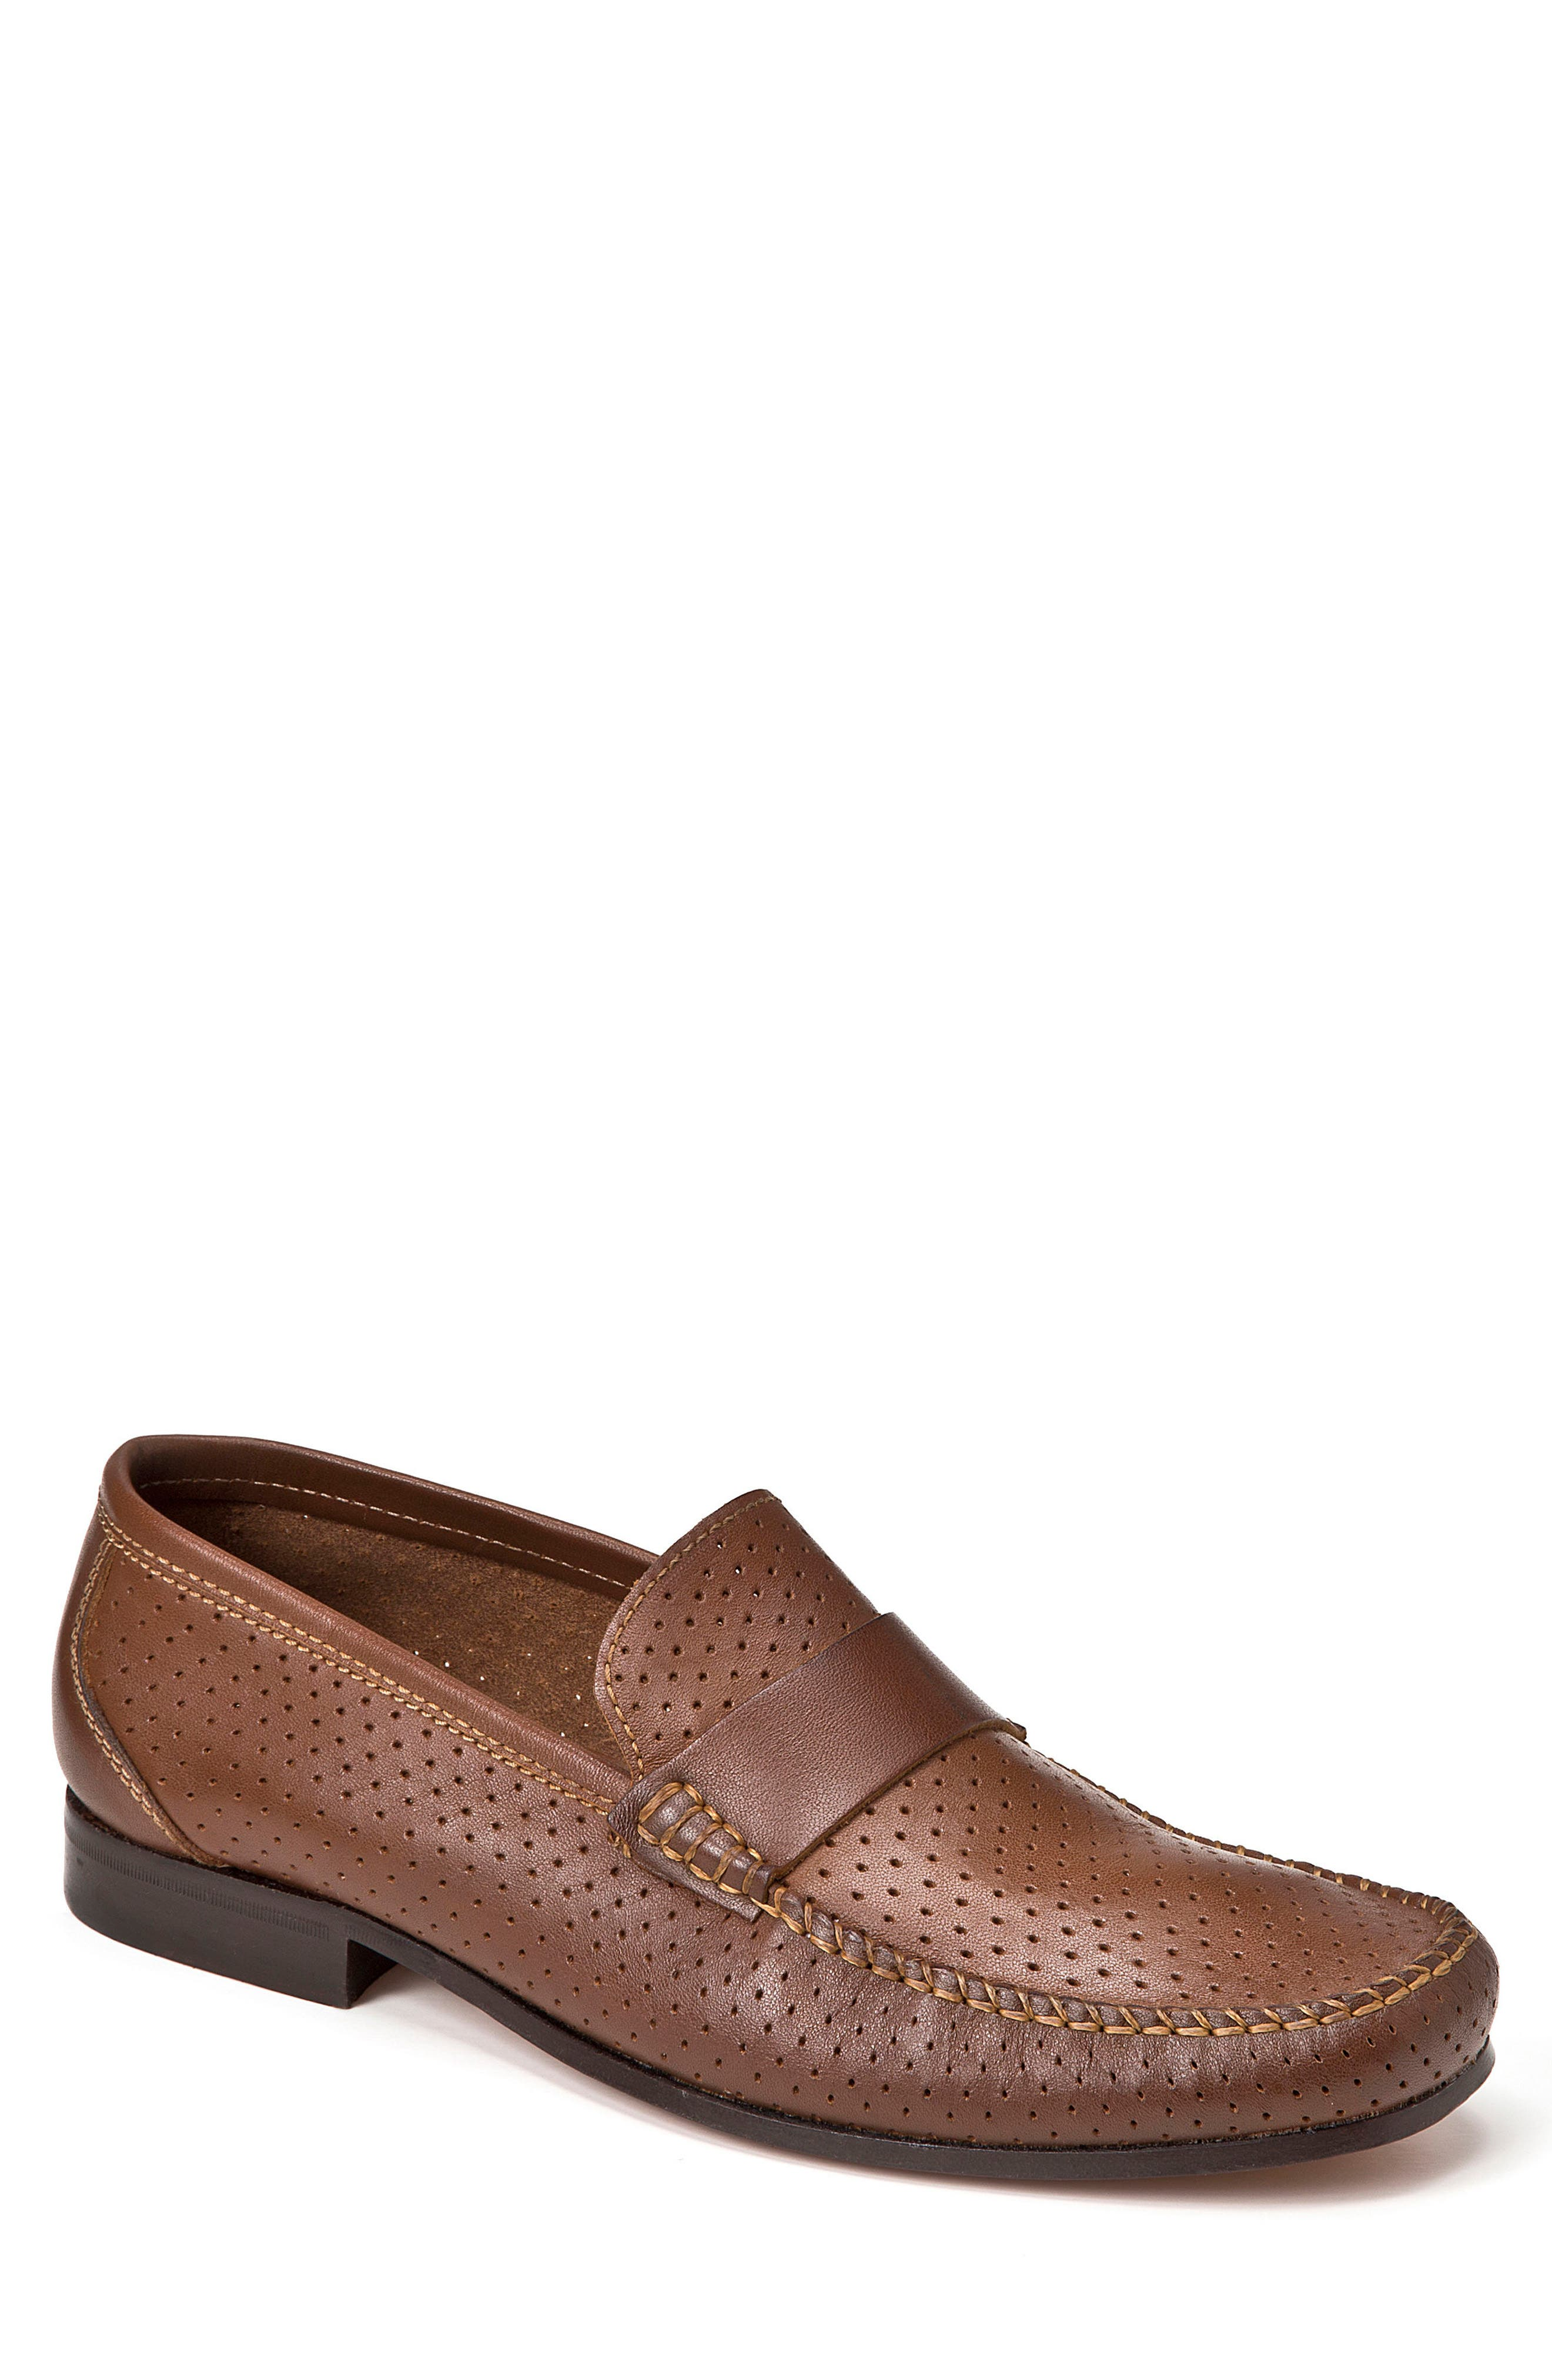 Alcazar Perforated Loafer,                         Main,                         color,